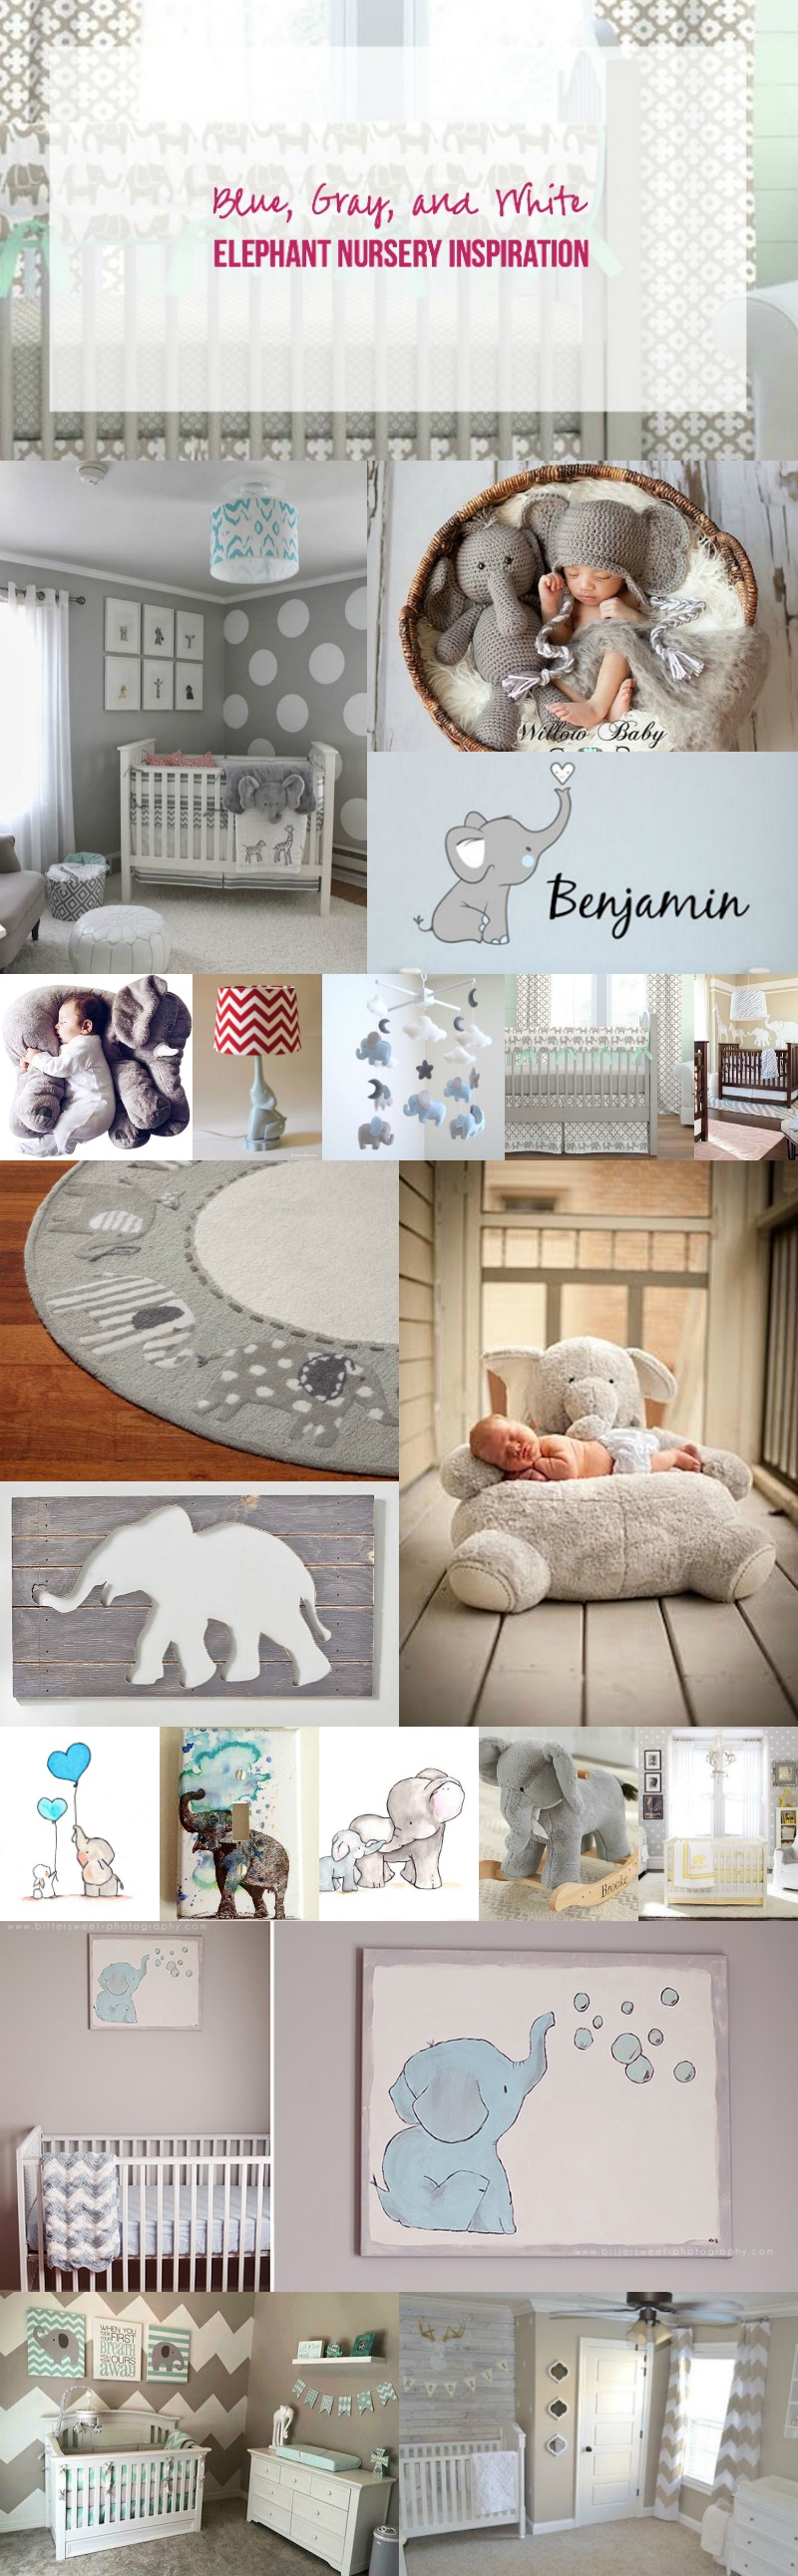 Blue, Gray, and White Elephant Nursery Inspiration